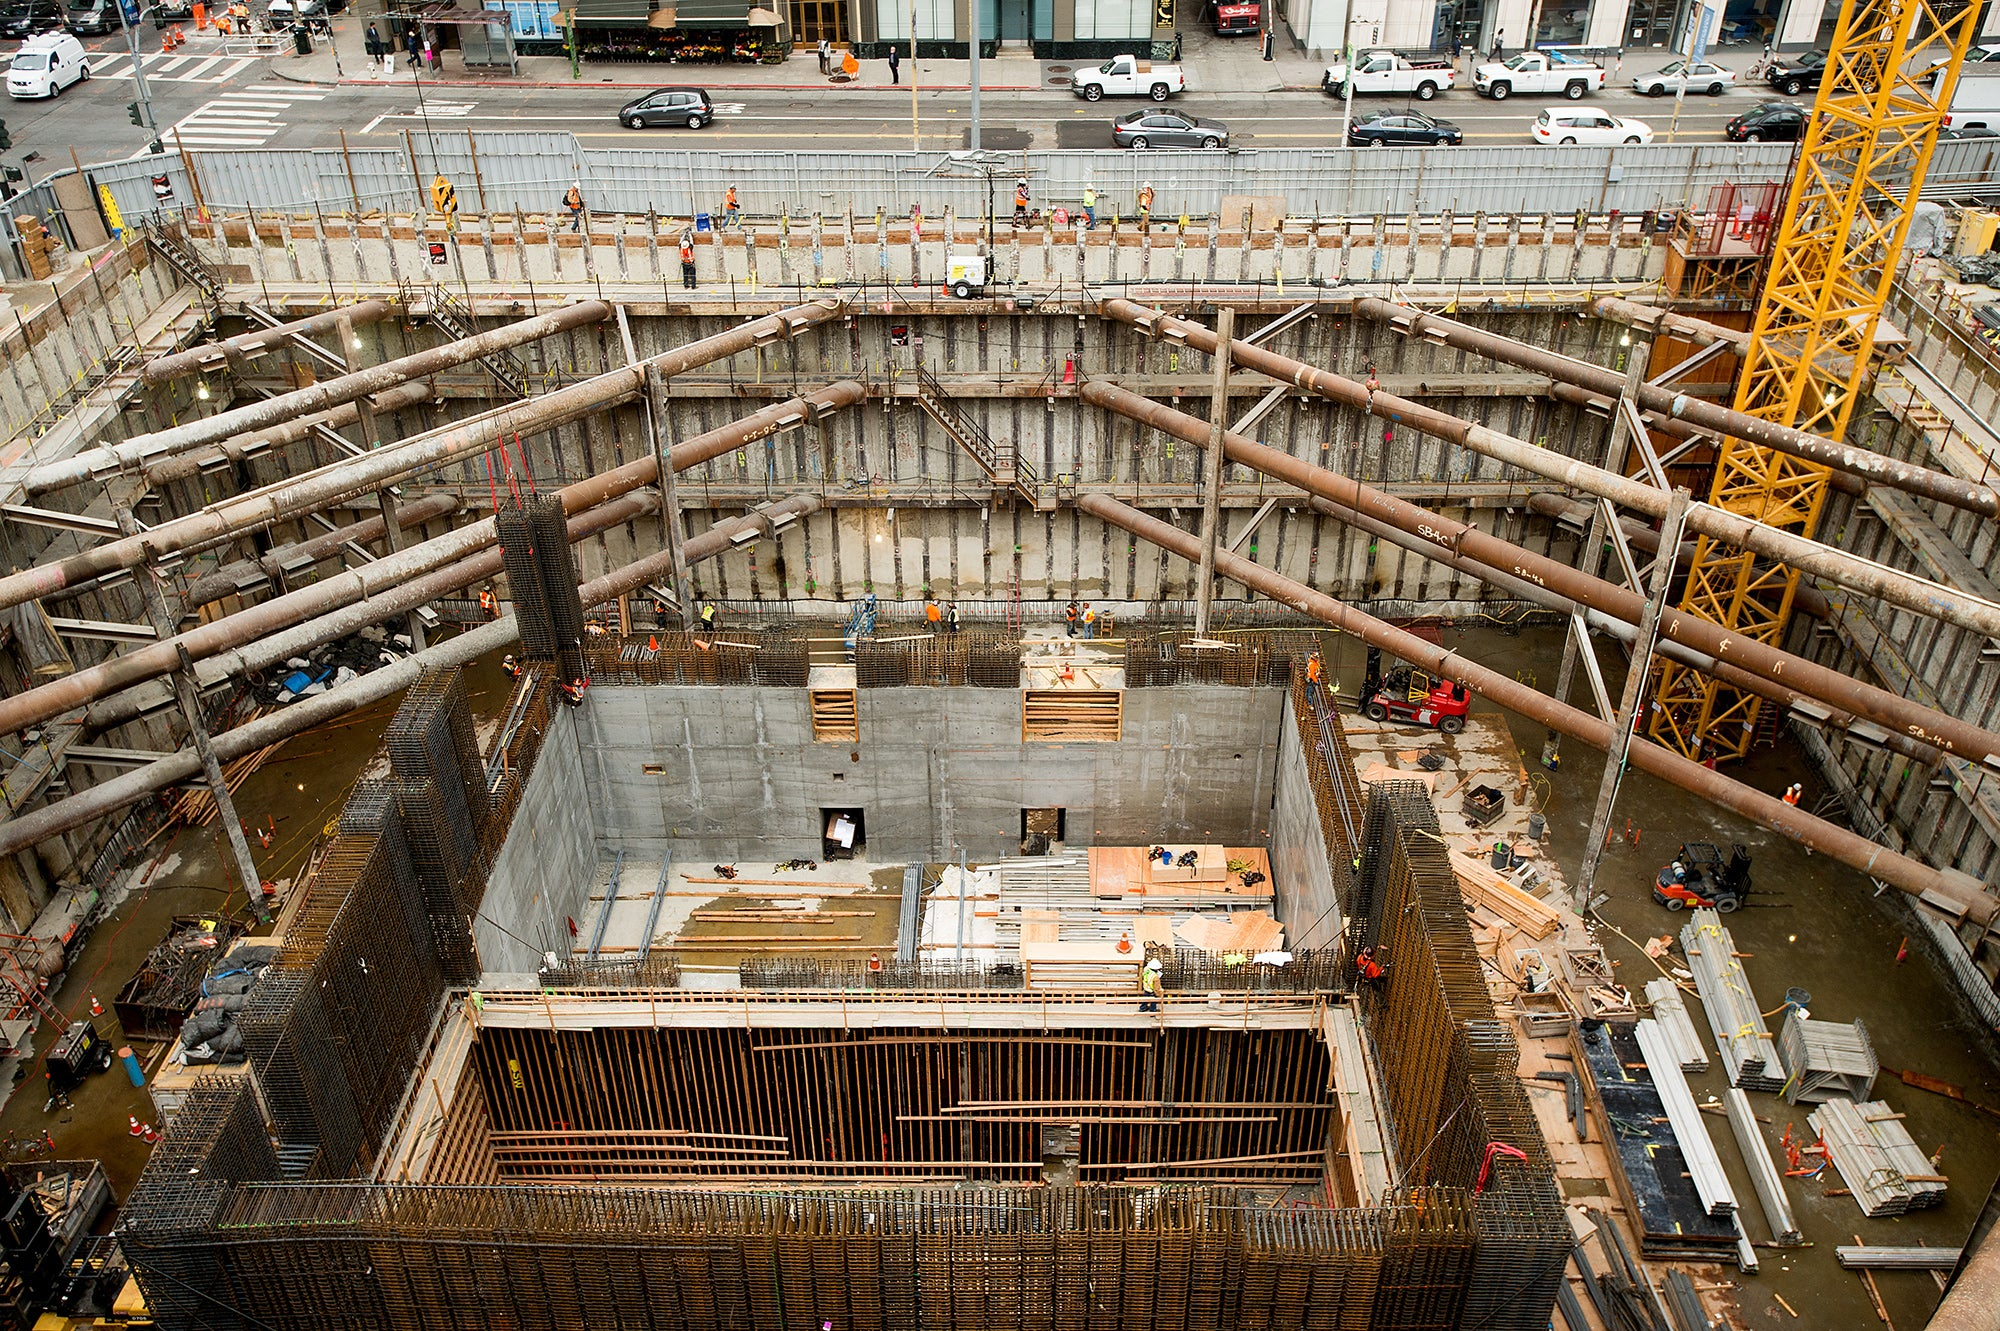 Braces cross the foundation of the Salesforce Tower which will connect to the Transbay Terminal